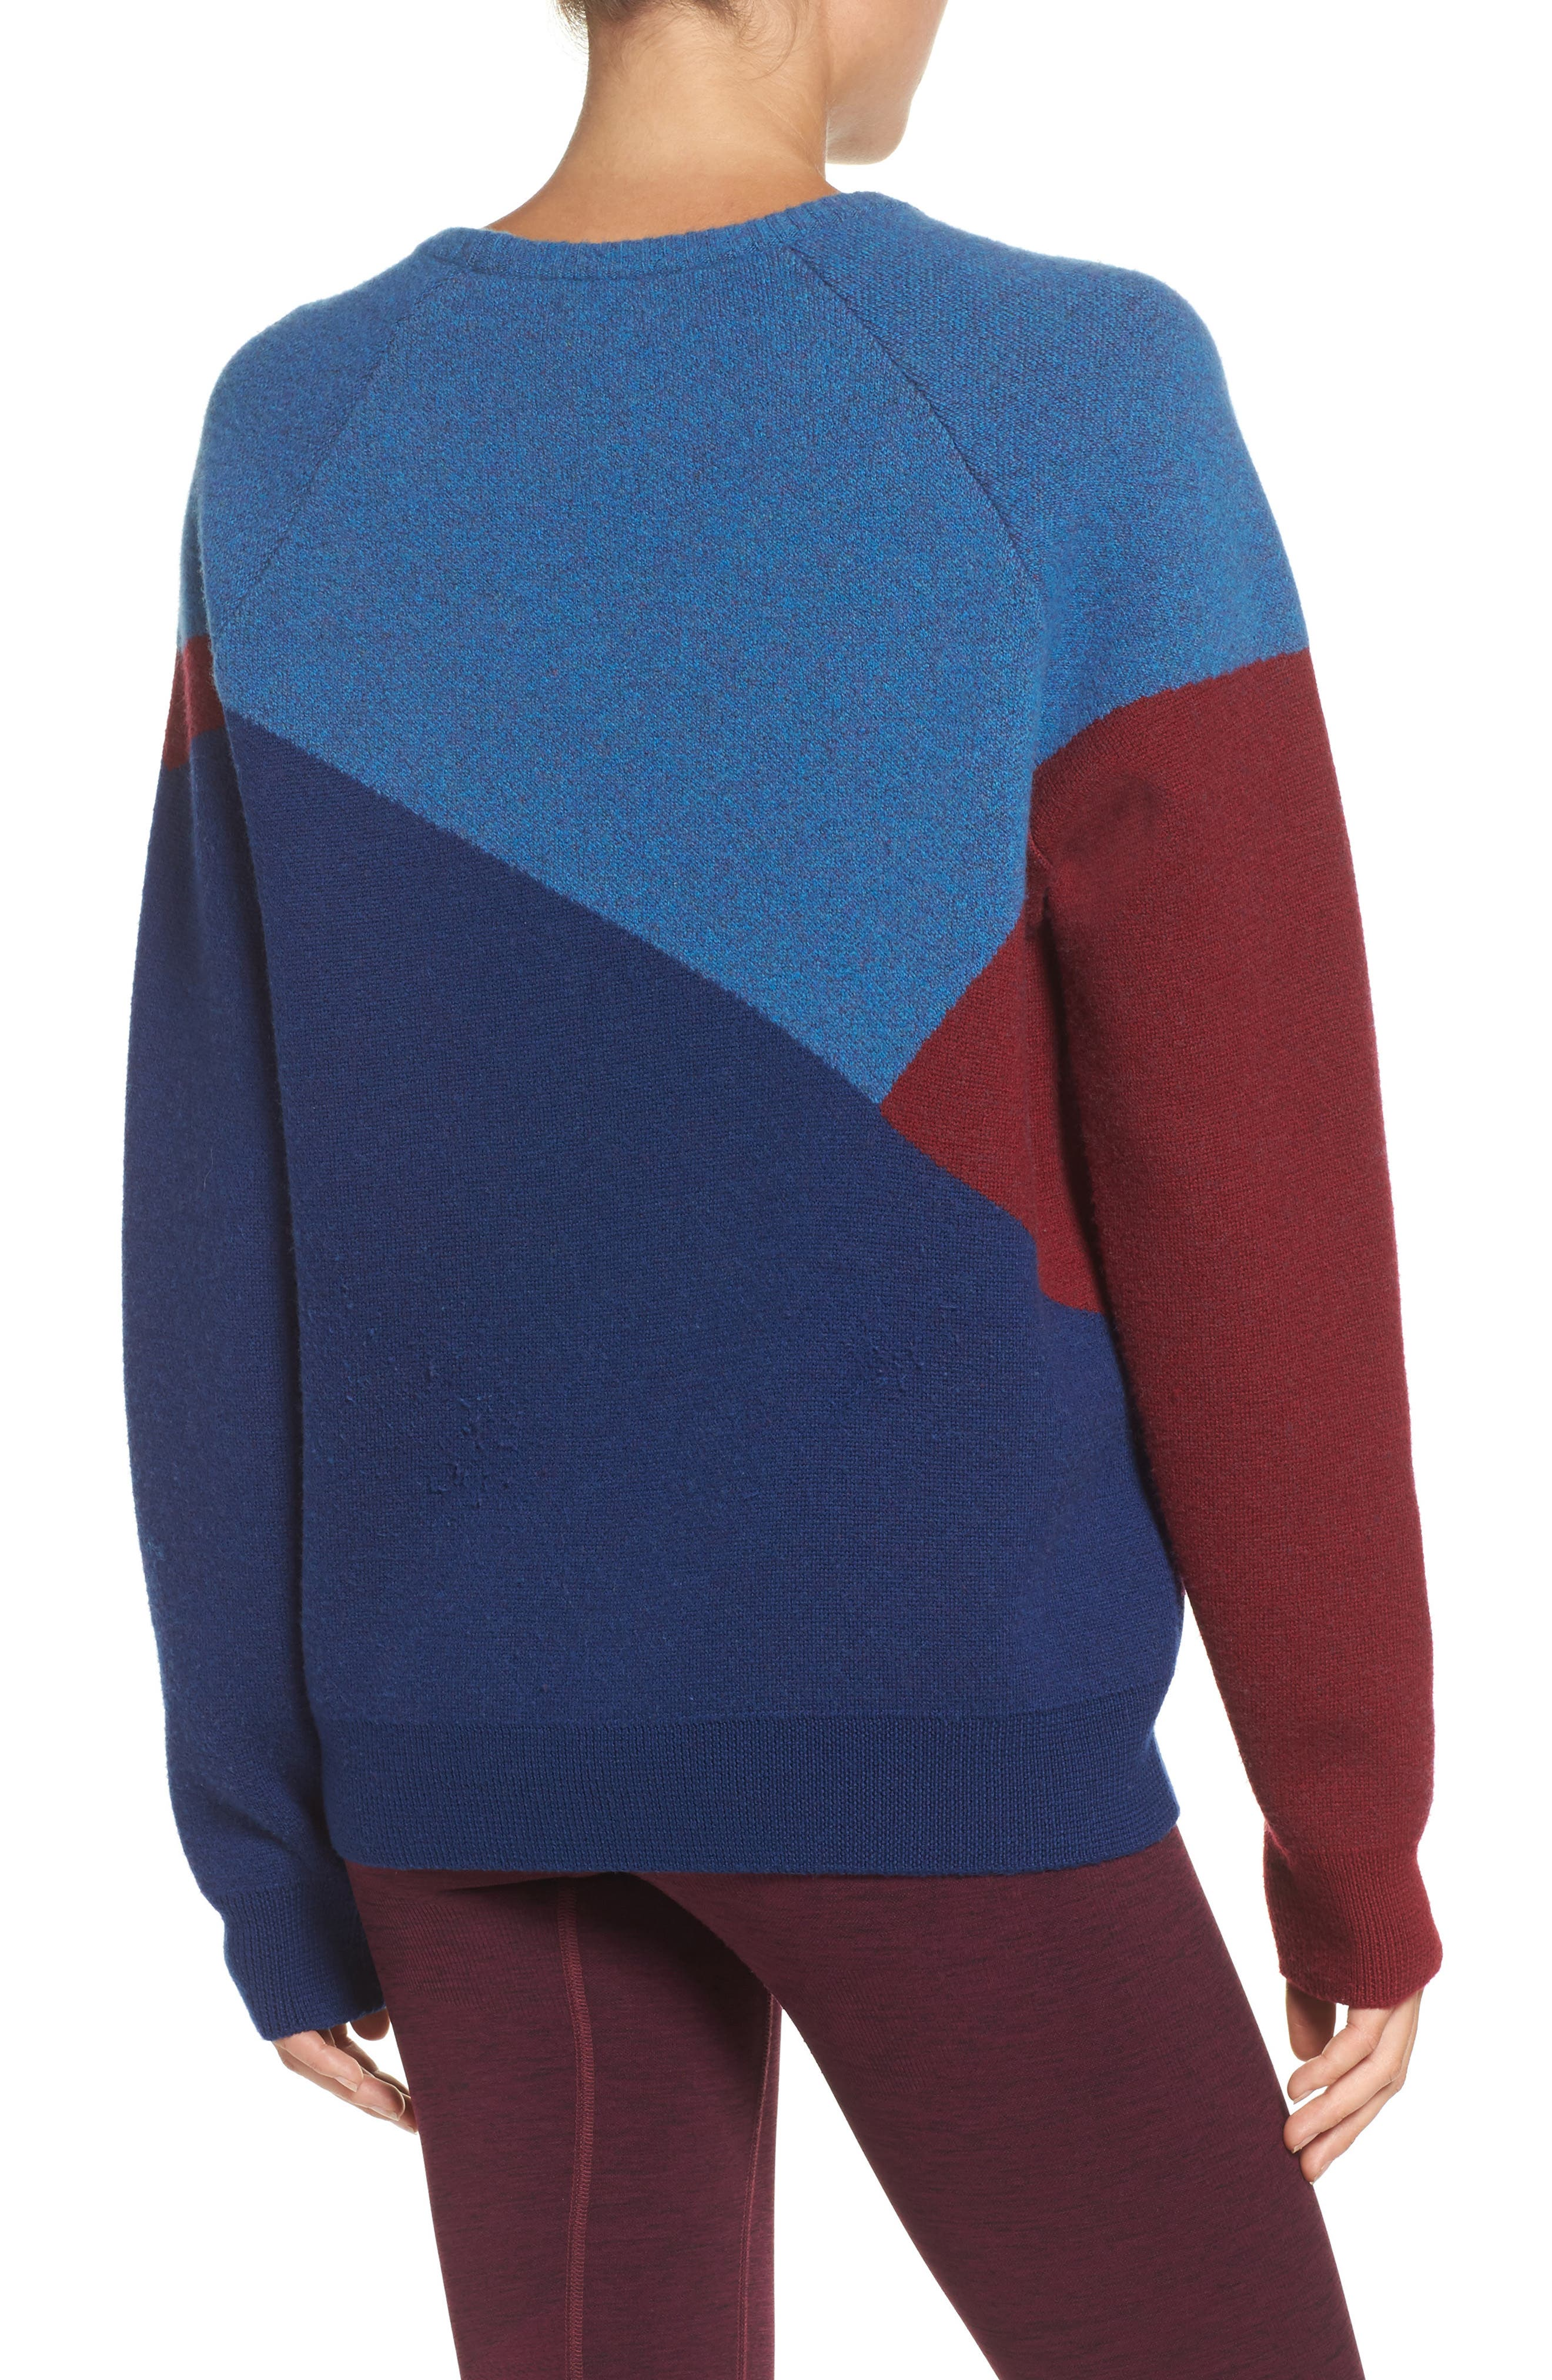 Winter Waterboy Sweater,                             Alternate thumbnail 2, color,                             Burgundy